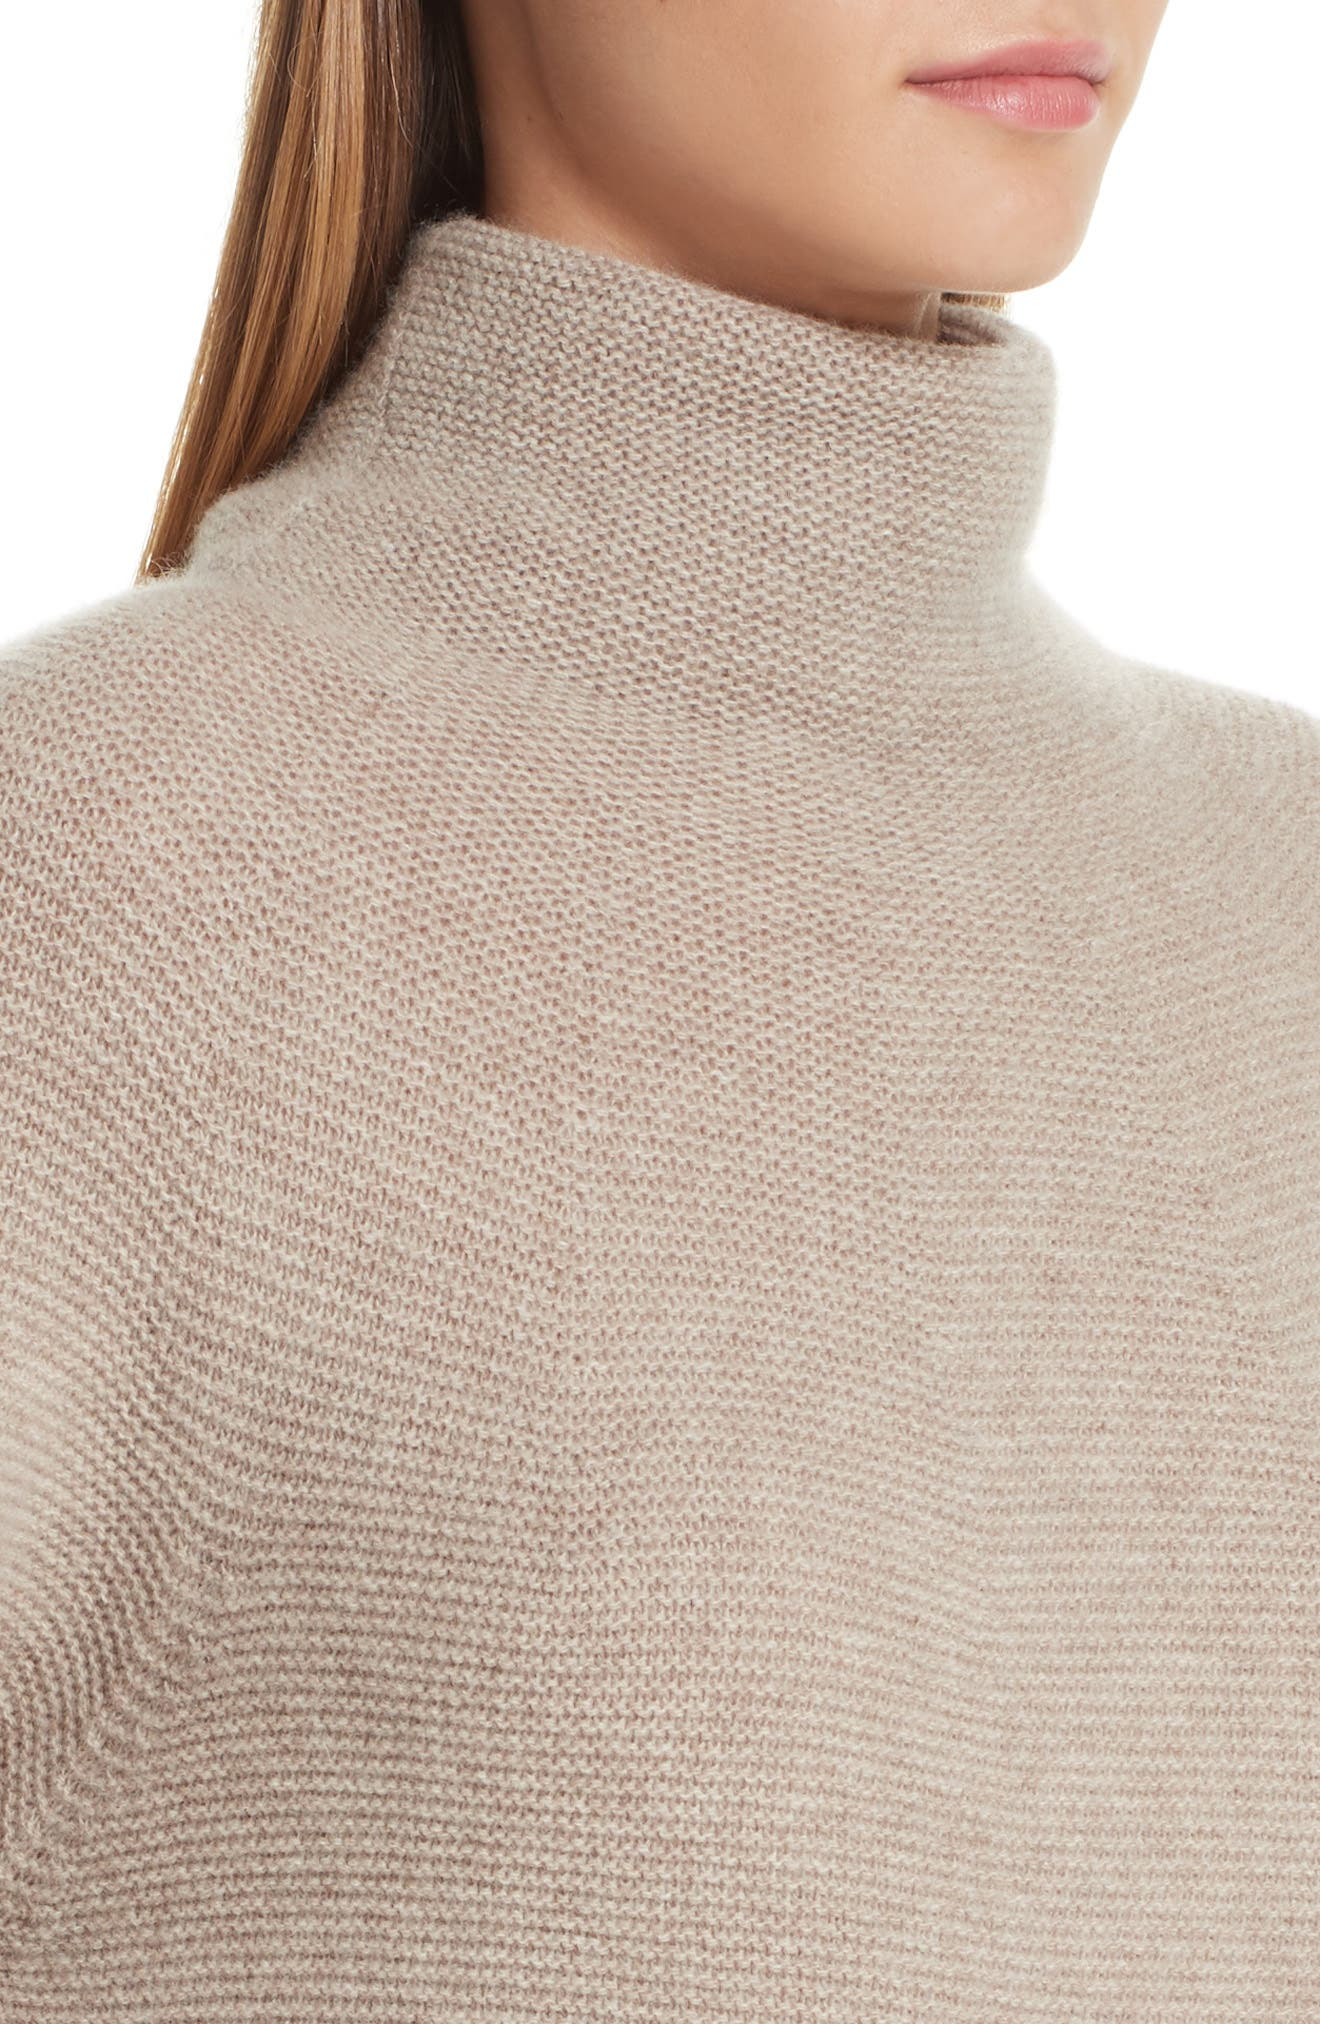 MAX MARA,                             Etrusco Wool & Cashmere Turtleneck Sweater,                             Alternate thumbnail 4, color,                             050